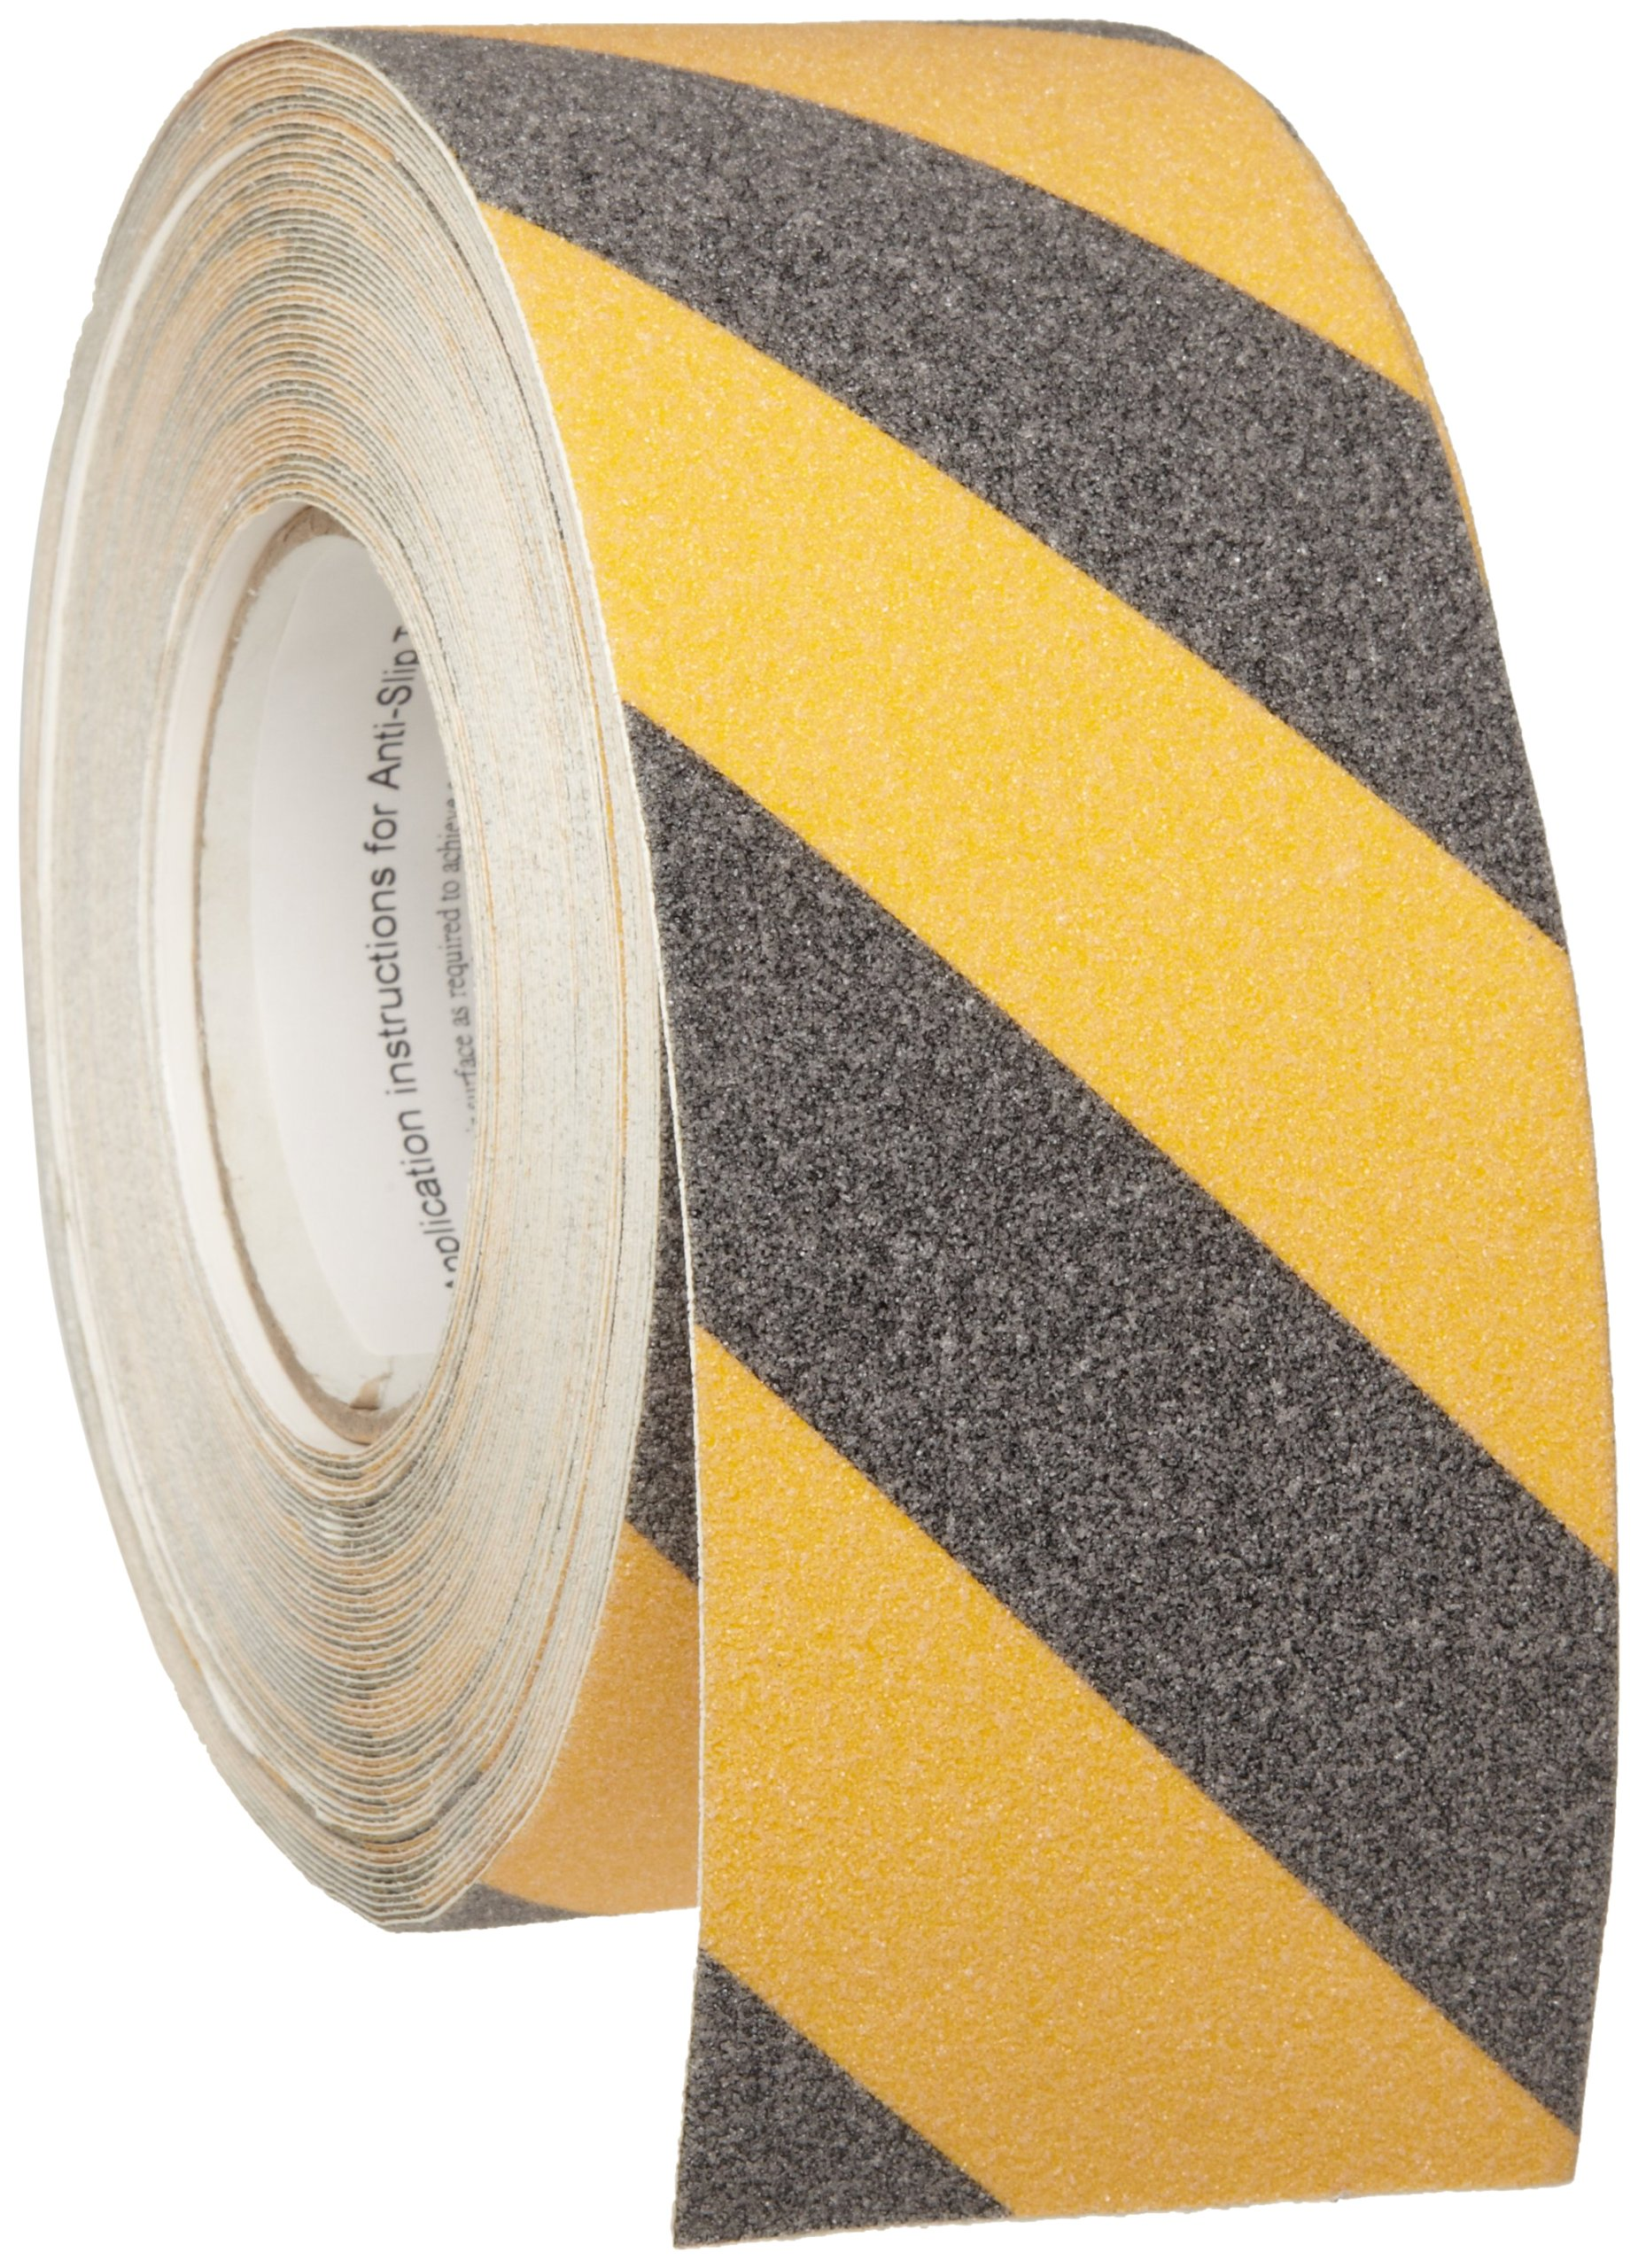 Brady 60' Length, 3'' Width, B-916 Grit-Coated Polyester Tape, Striped Special Black And Yellow Color Anti-Skid Tape